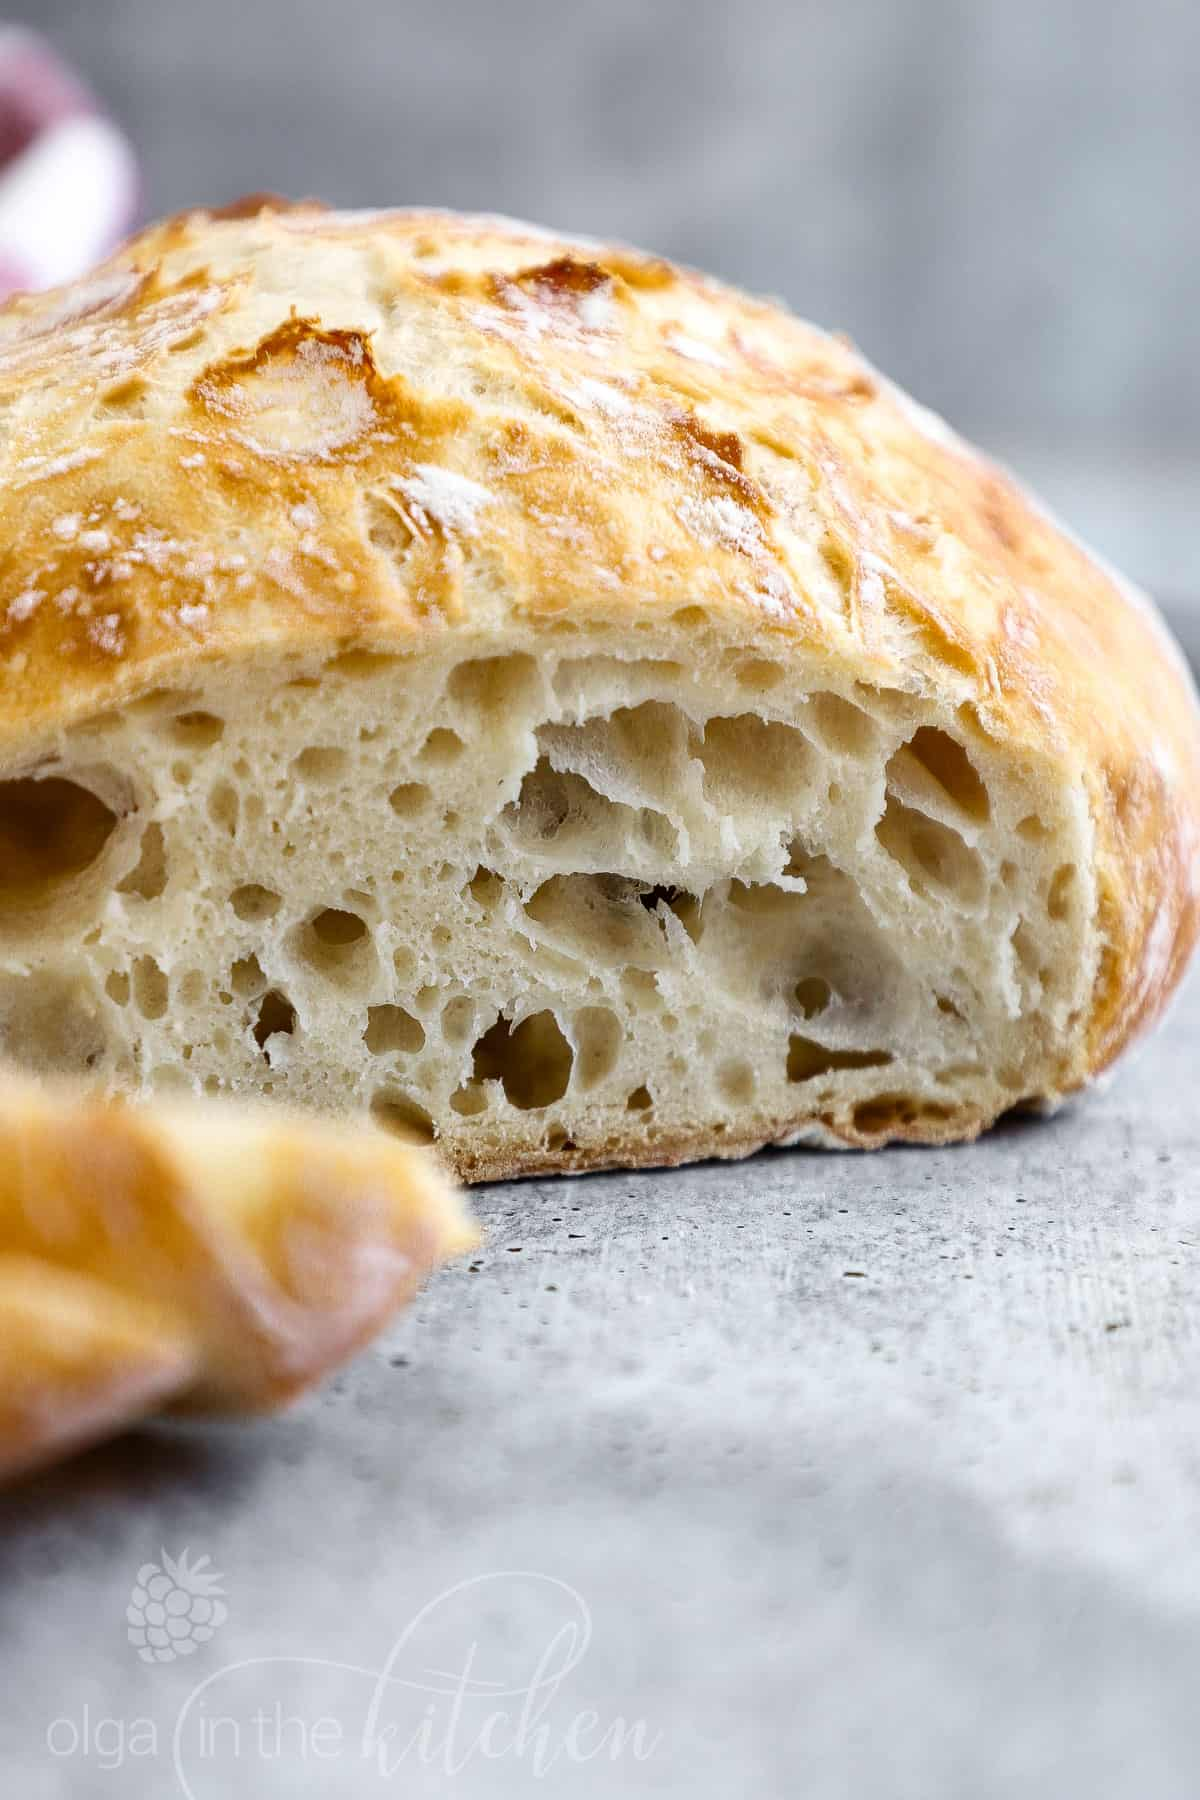 This easy No-Knead Bread loaf has a deliciously crisp crust and a soft spongy center. It's the perfect blend of soft and chewy. With only 4 ingredients (flour, salt, yeast and water), you can make a bakery-quality, scrumptious loaf of homemade bread. #nokneadbread #bread #olgainthekitchen #easyrecipe #recipes #rusticbread